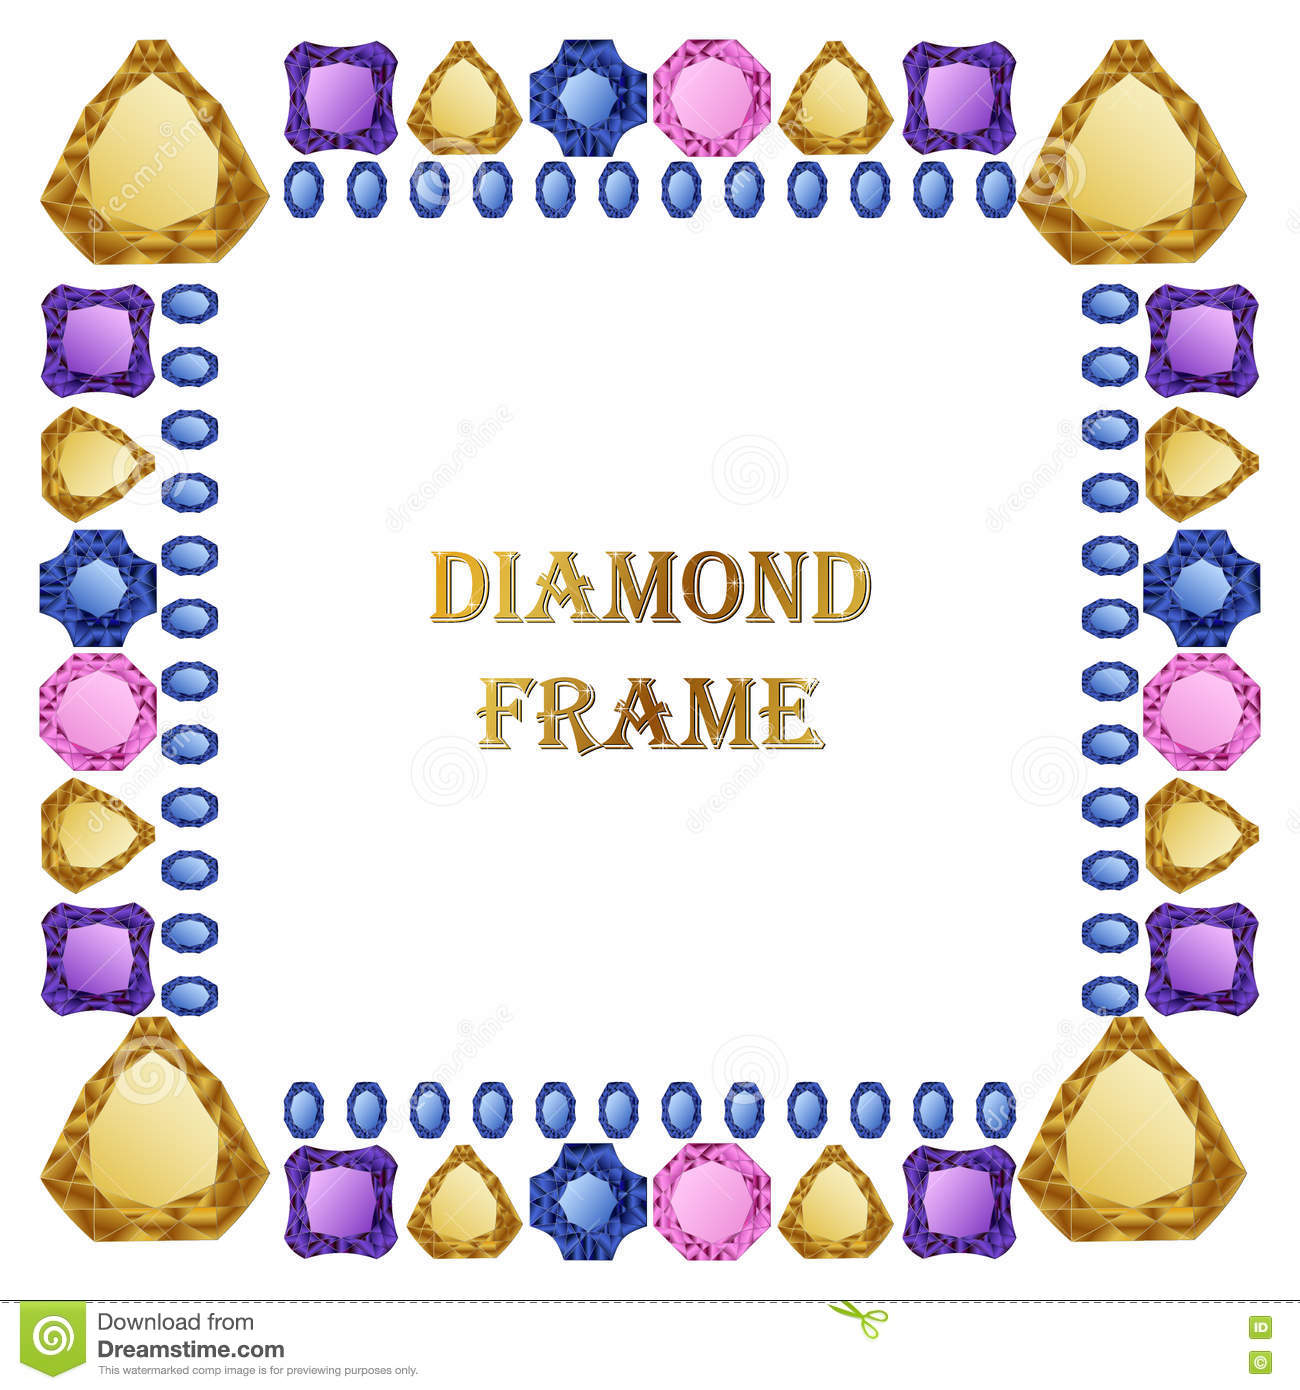 Diamond square frame stock vector. Illustration of jewel - 72595706